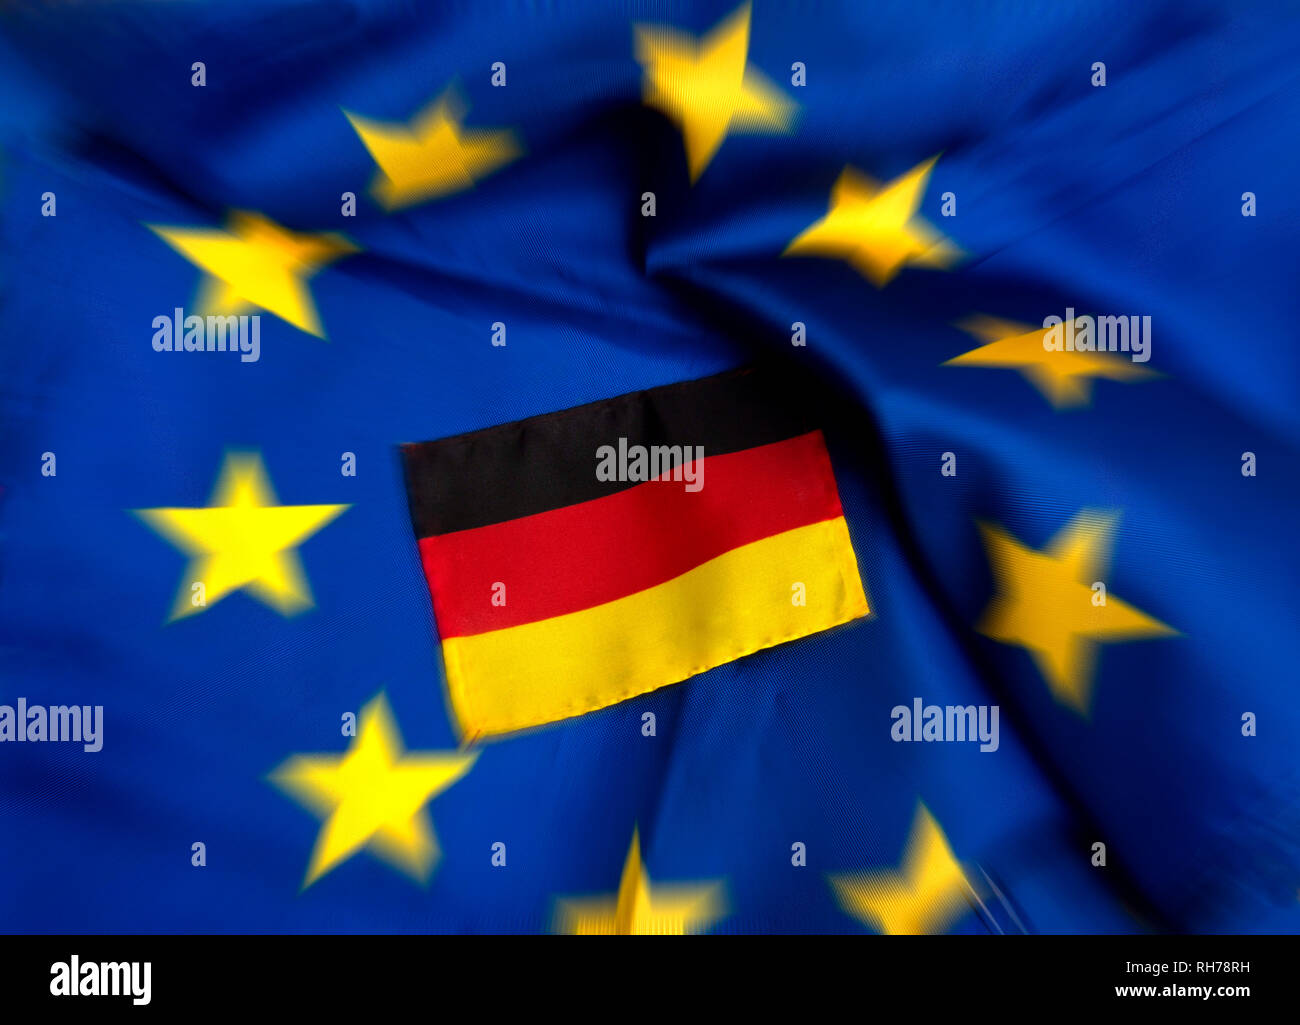 Flags of European Union and Germany - Stock Image